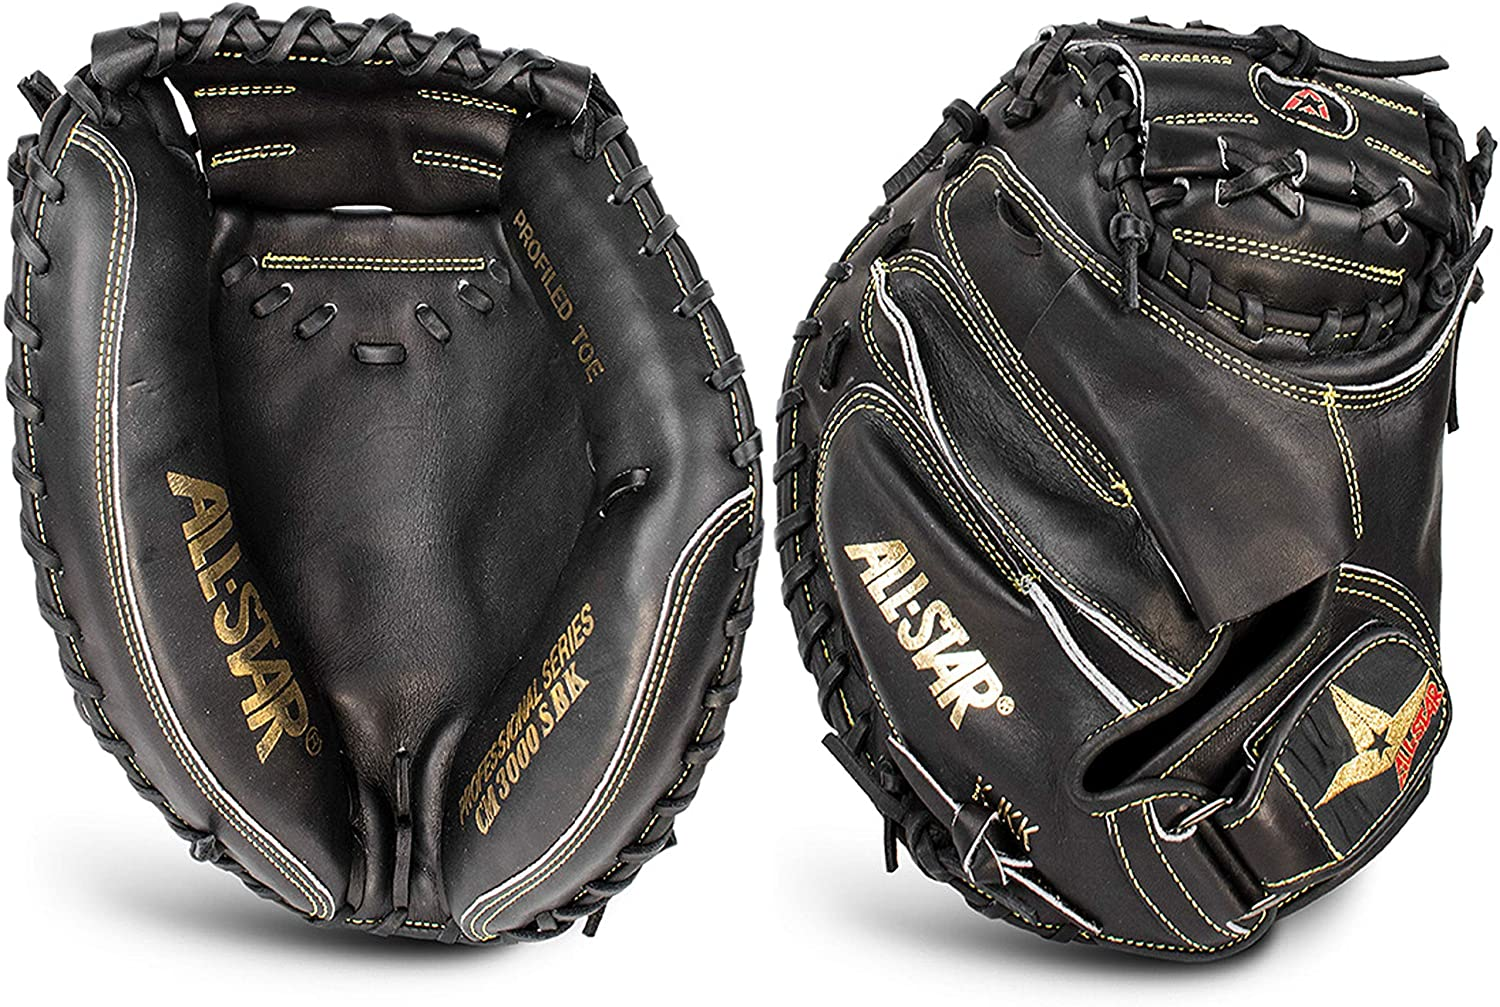 all-star-pro-elite-33-5-professional-catchers-mitt-black-right-hand-throw CM300SBK-1-RightHandThrow   At All-Star Sporting Goods® our motto is simple MOVE FORWARD RISE